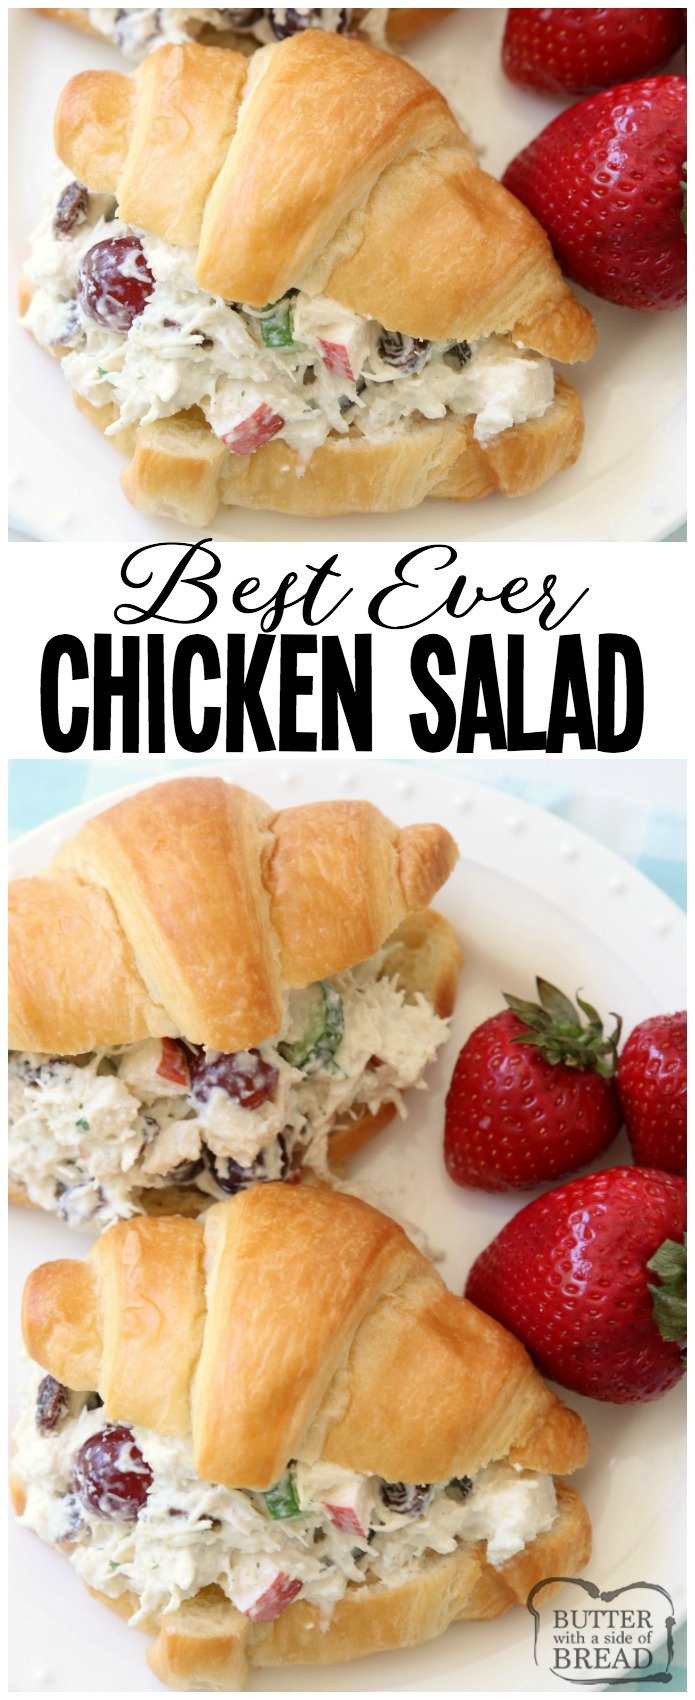 Easy 5-Minute Chicken Salad recipe that's the BEST I've ever tasted! The simple dressing really makes it perfect. Chicken Salad recipe made with diced chicken, plain yogurt, apples, grapes, celery, cucumber, raisins and more! Great as chicken salad sandwiches or in lettuce as a wrap or on crackers. #chicken #salad #lunch #brunch #chickensalad #protein #healthy #recipe from Butter With A Side of Bread